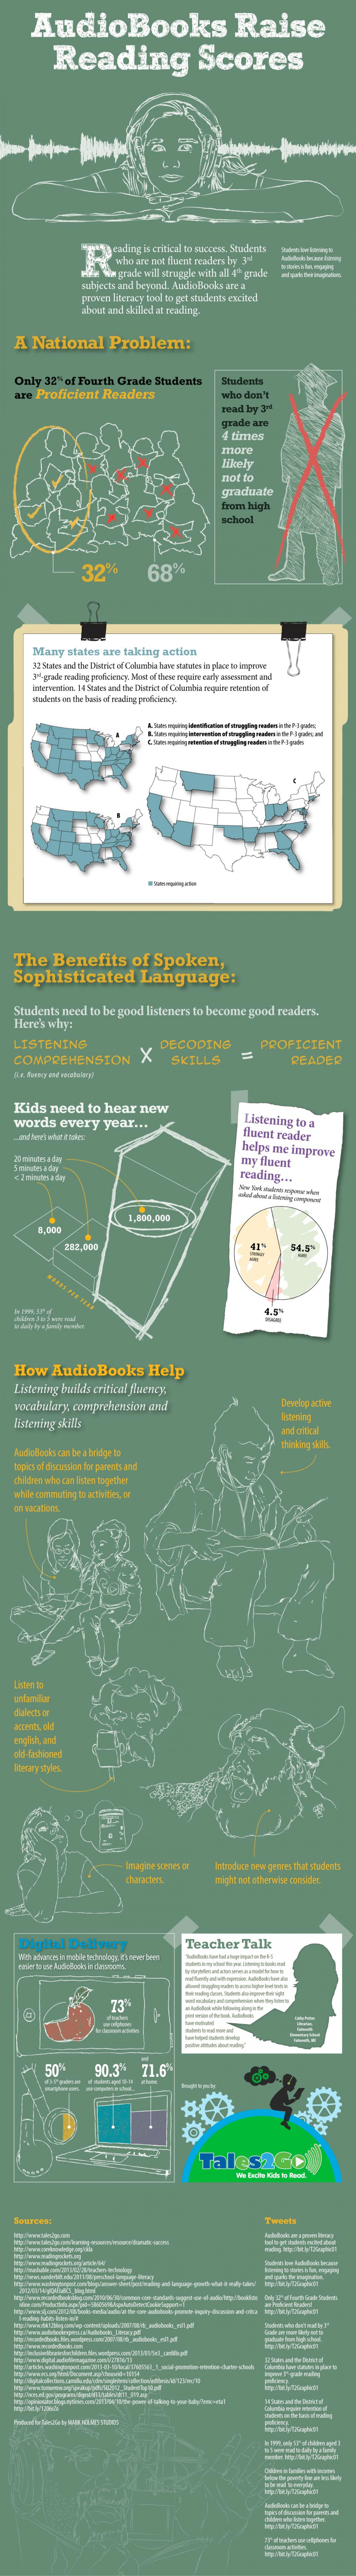 AudioBooks Raise Reading Scores Infographic